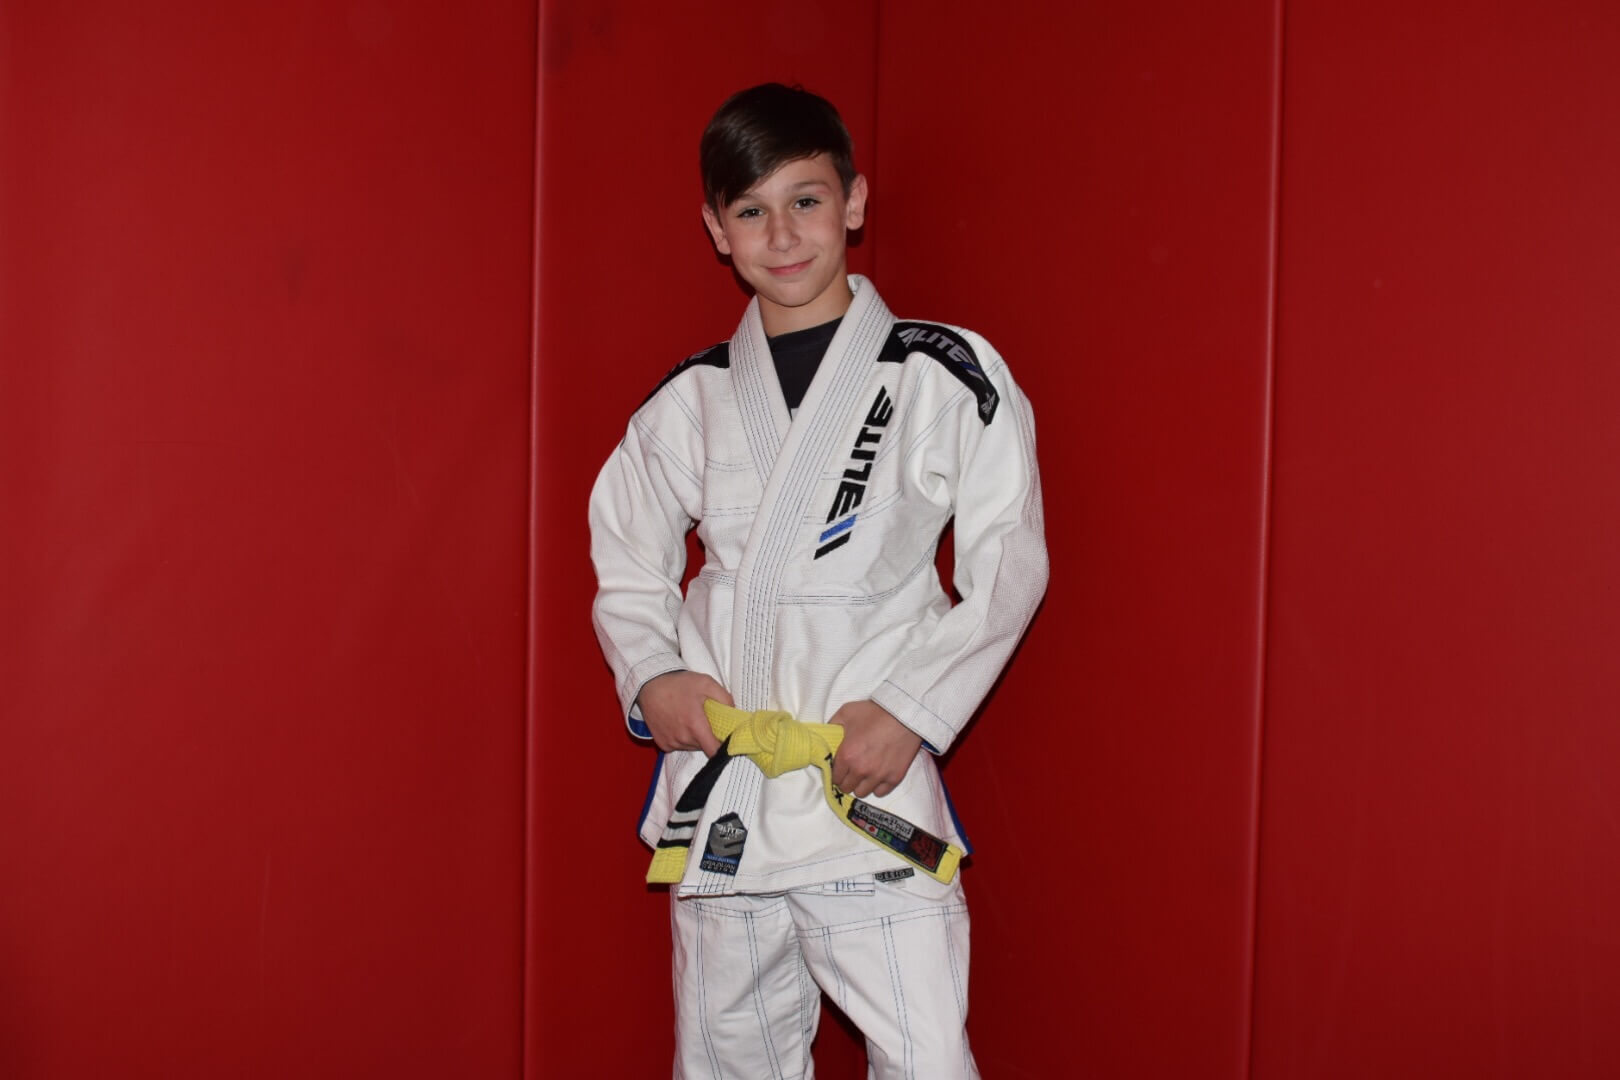 Elite Sports Team Elite Bjj Fighter Maximus MacDougall   Image1